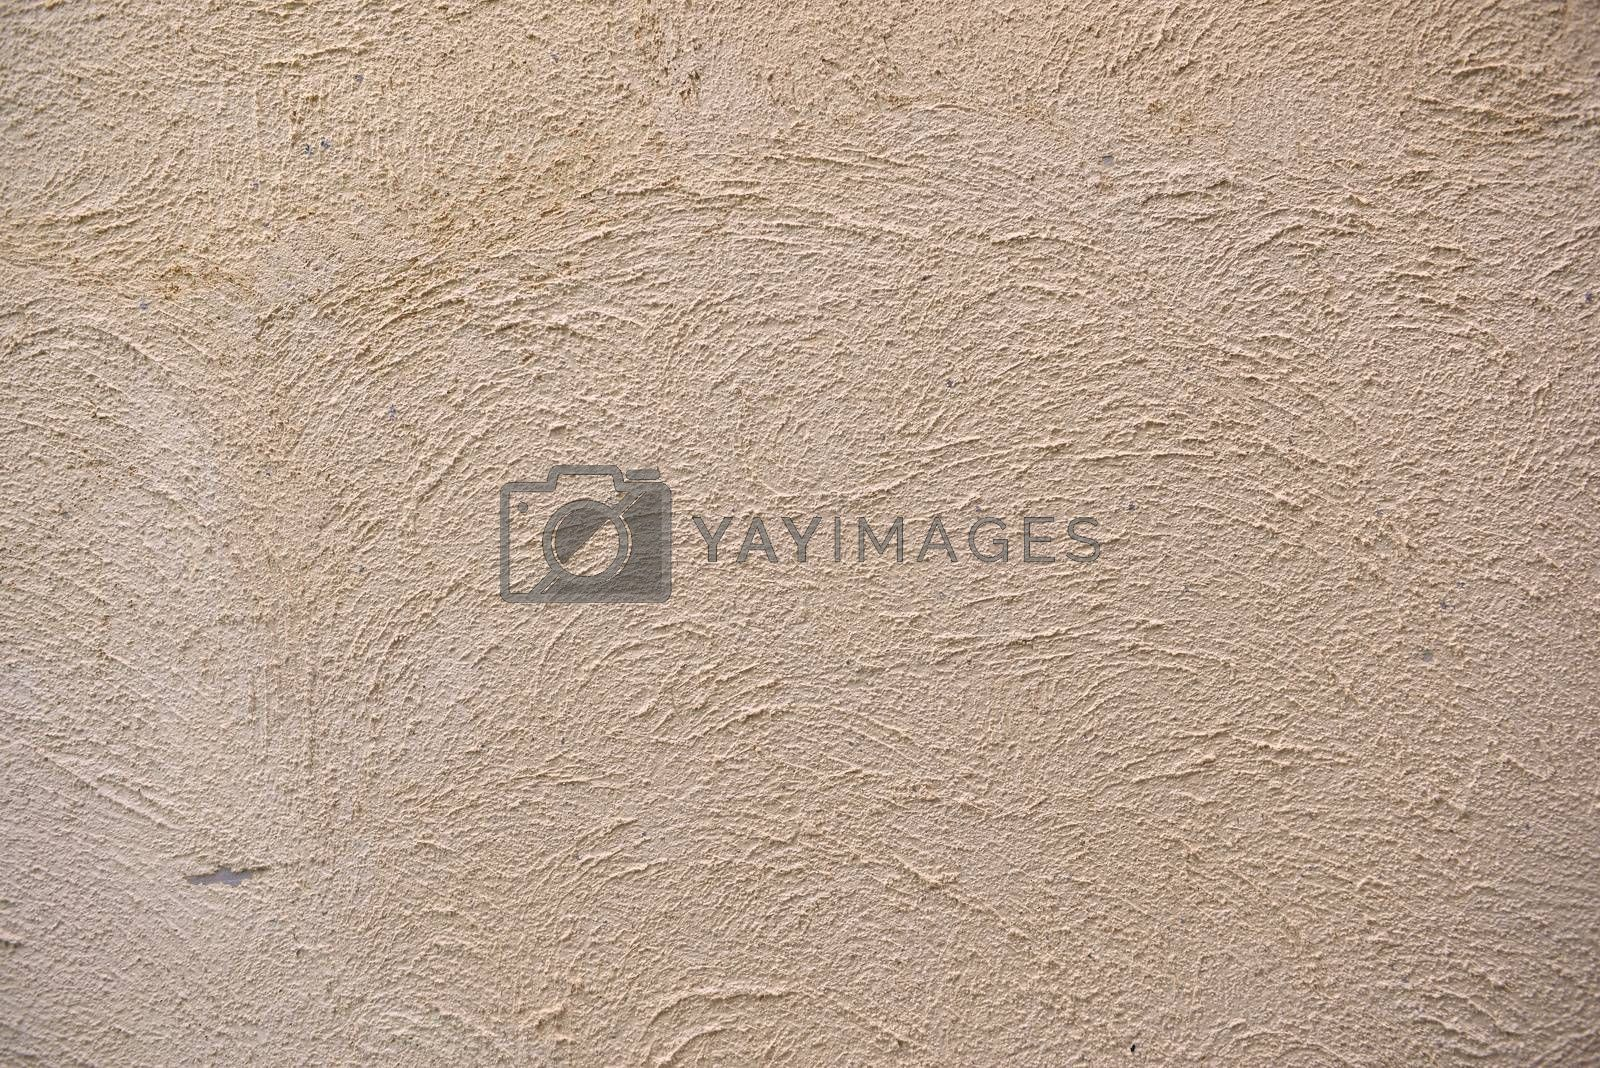 Royalty free image of Cement wall by antpkr